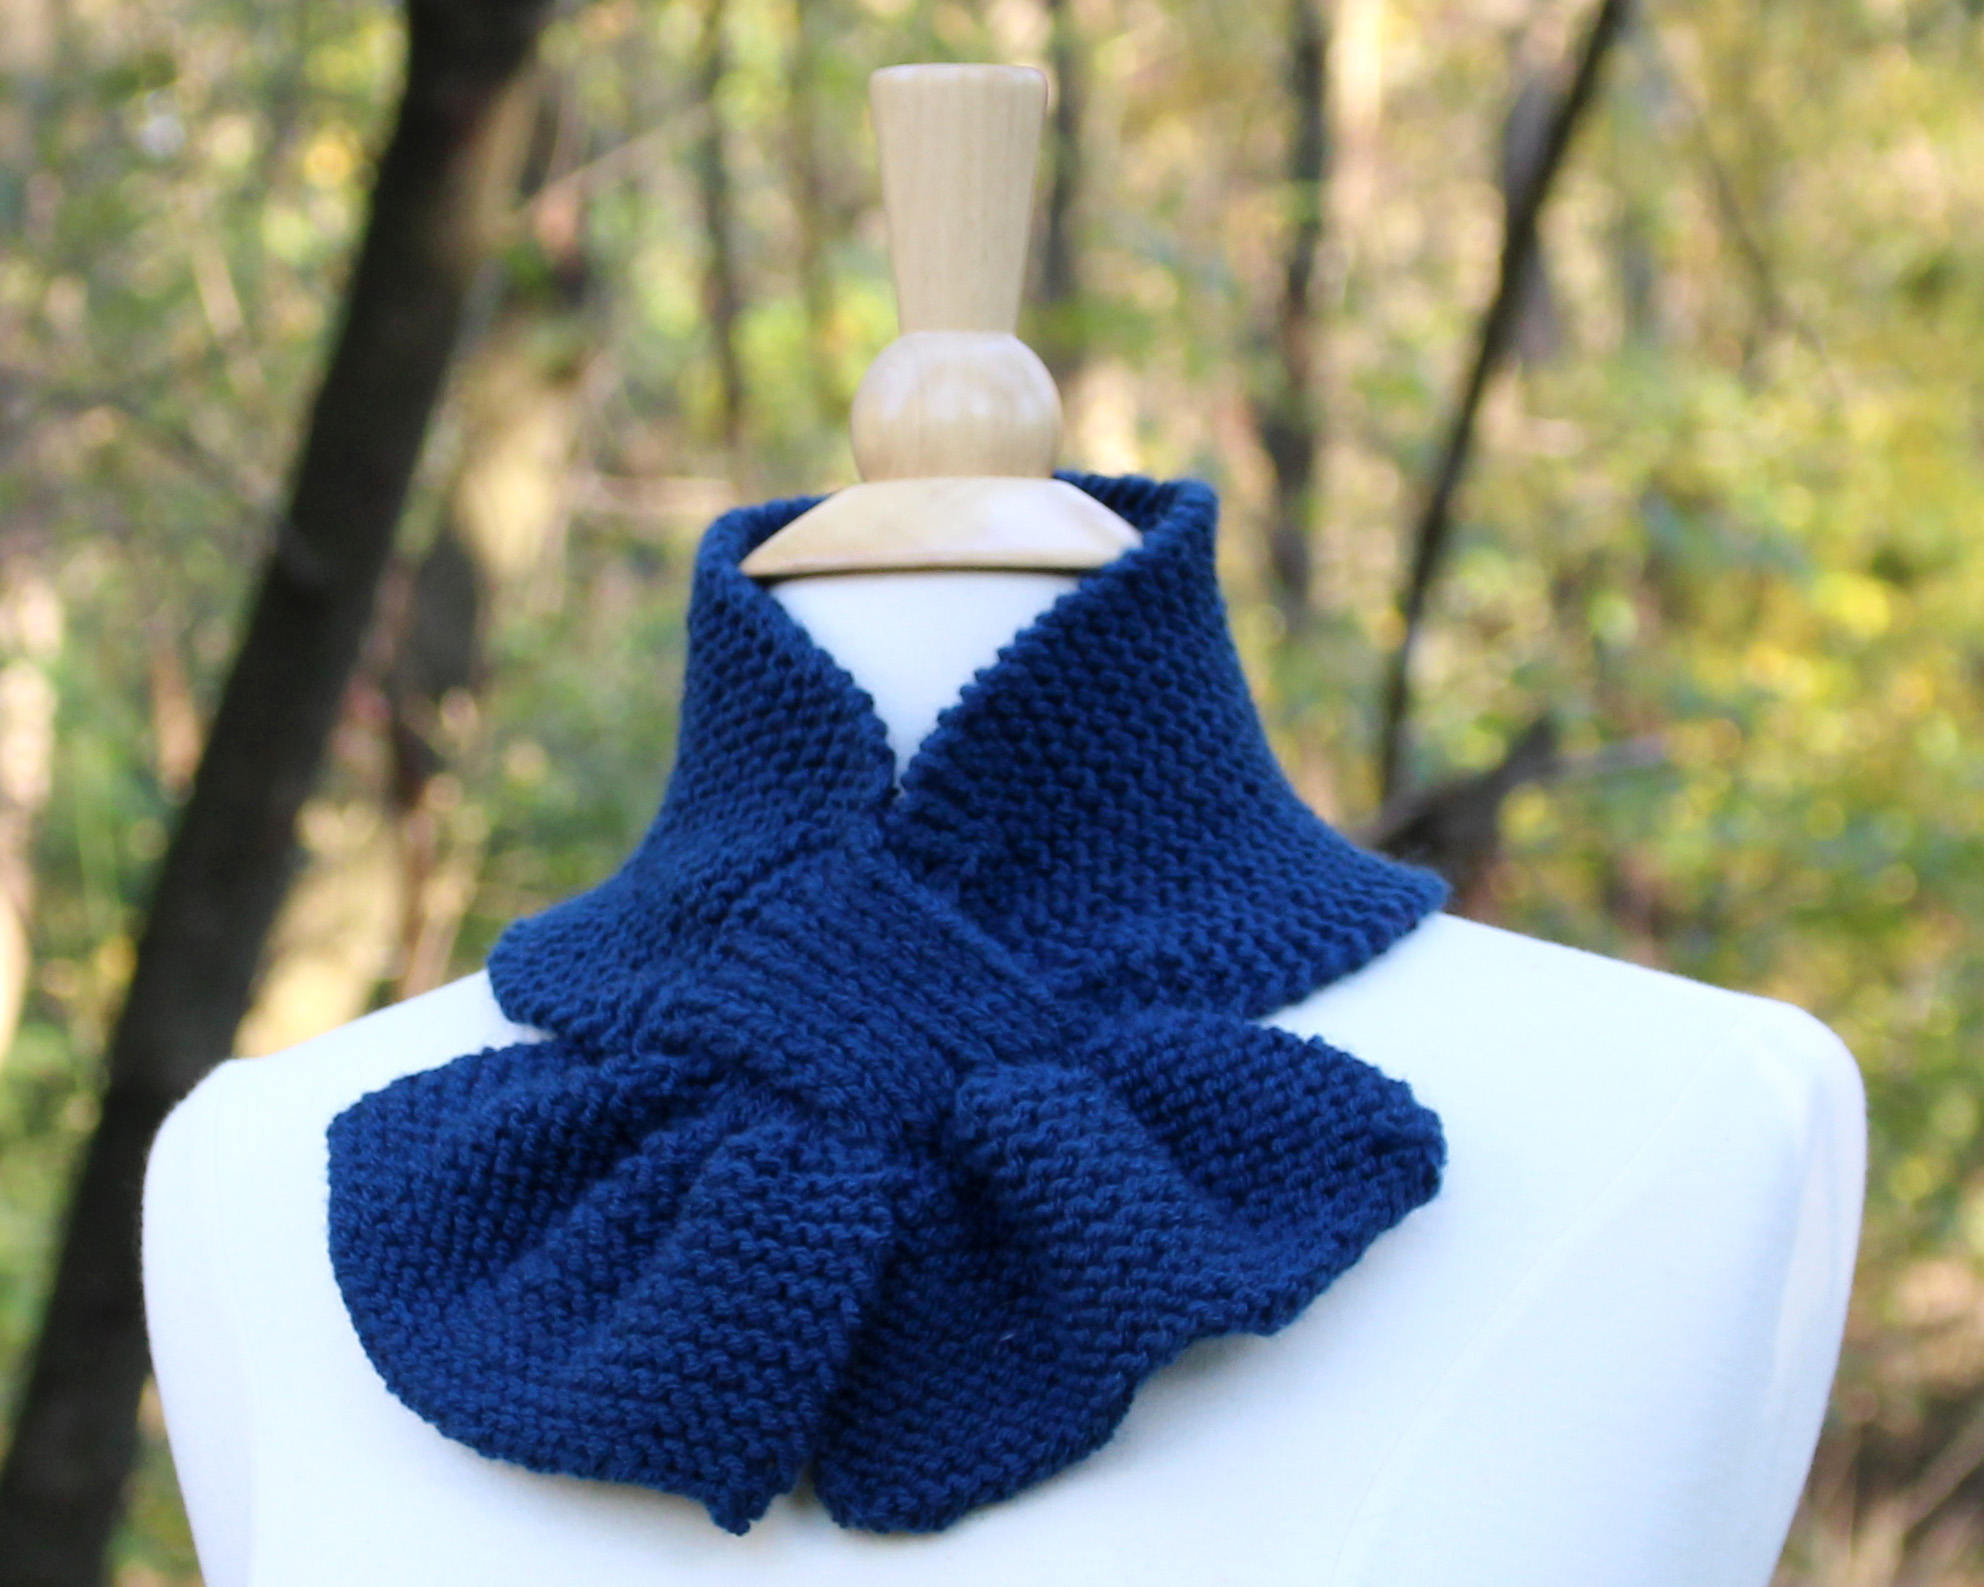 Ascot Scarf Knitting Pattern Midnight Blue Scarf Dark Blue Knit Scarf Knit Ascot Scarf Unique Scarf Pull Through Scarf Small Scarf Keyhole Scarf Gift For Her